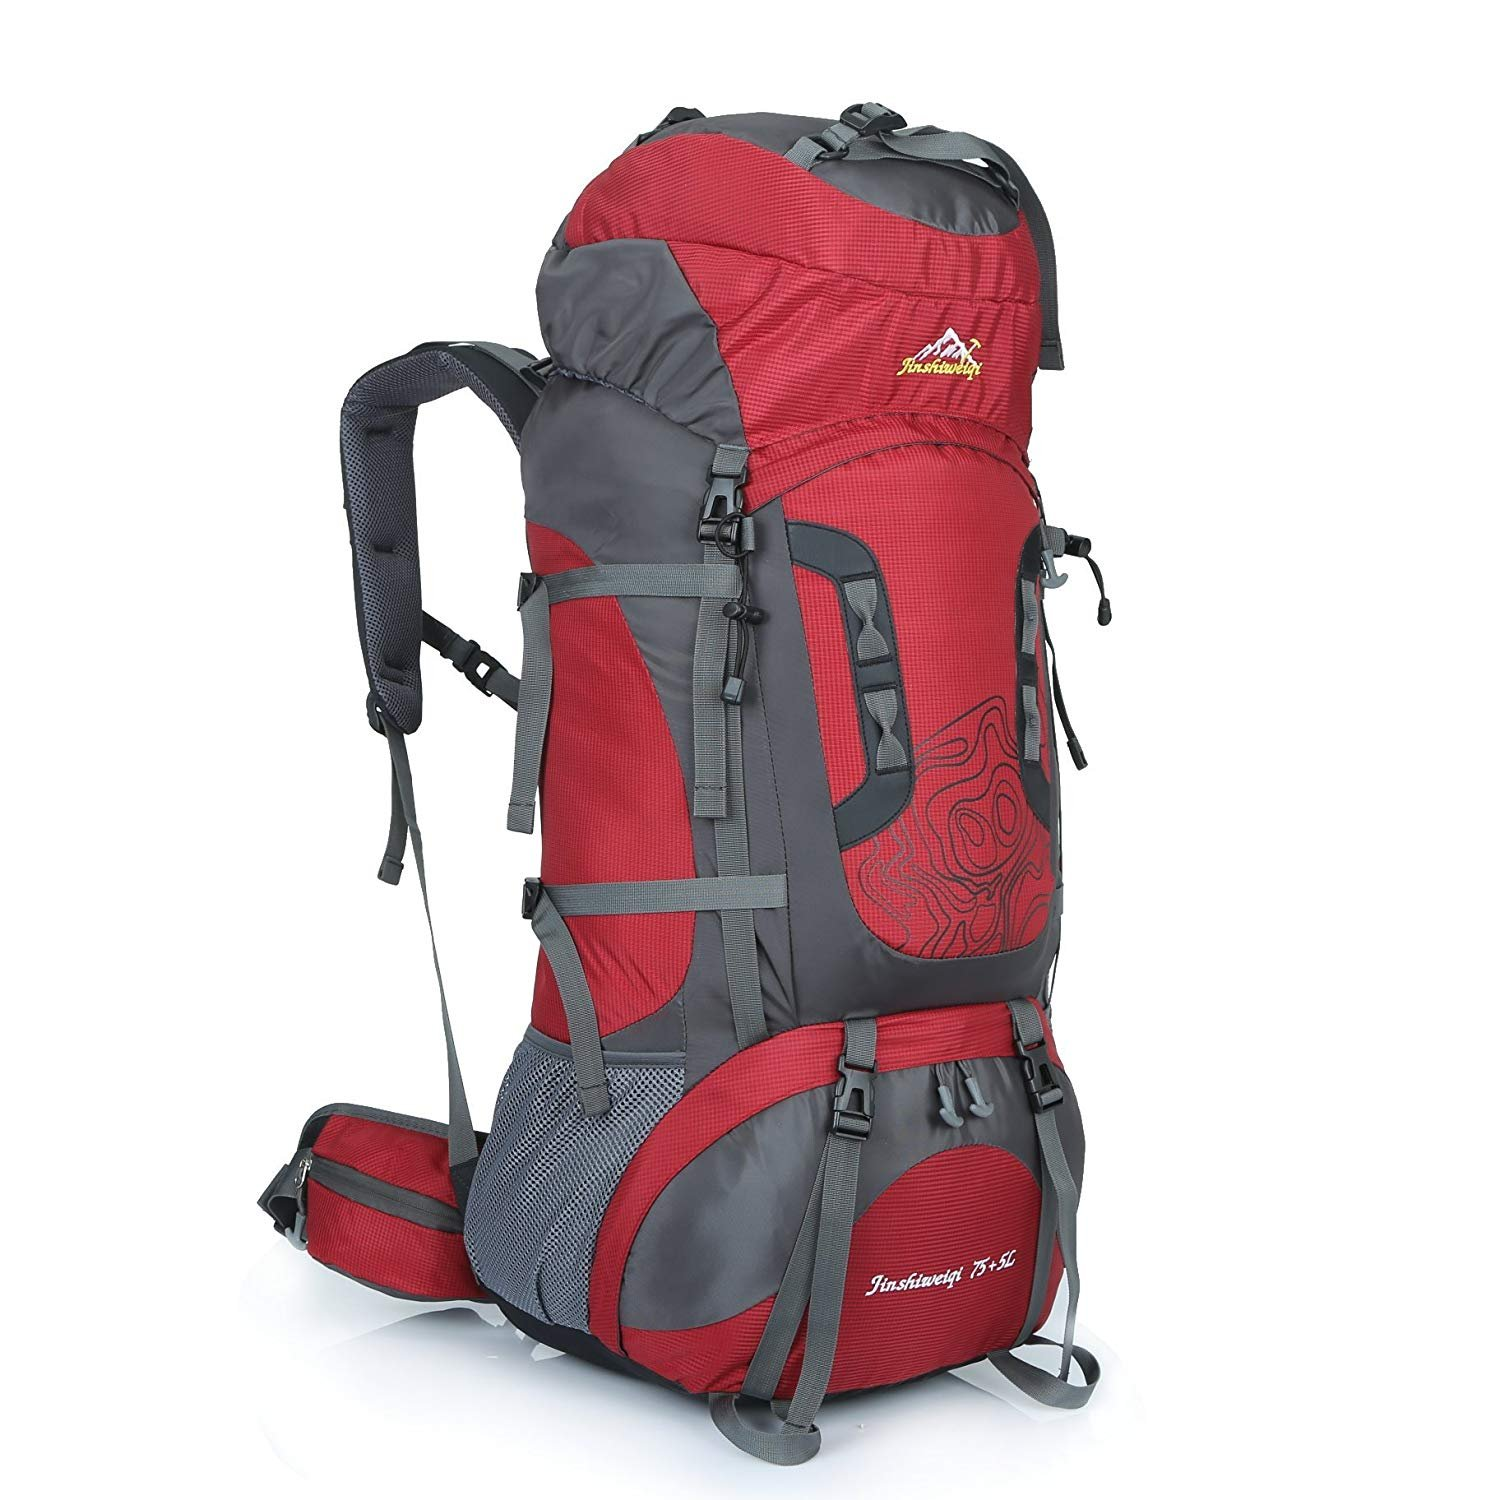 99ebf353ff Outdoor 80L Rucksack Backpack Camping Hiking Trekking Bags Camping Backpack  Rucksack Bag for Travel Hiking Climbing (Red)  Amazon.co.uk  Sports    Outdoors